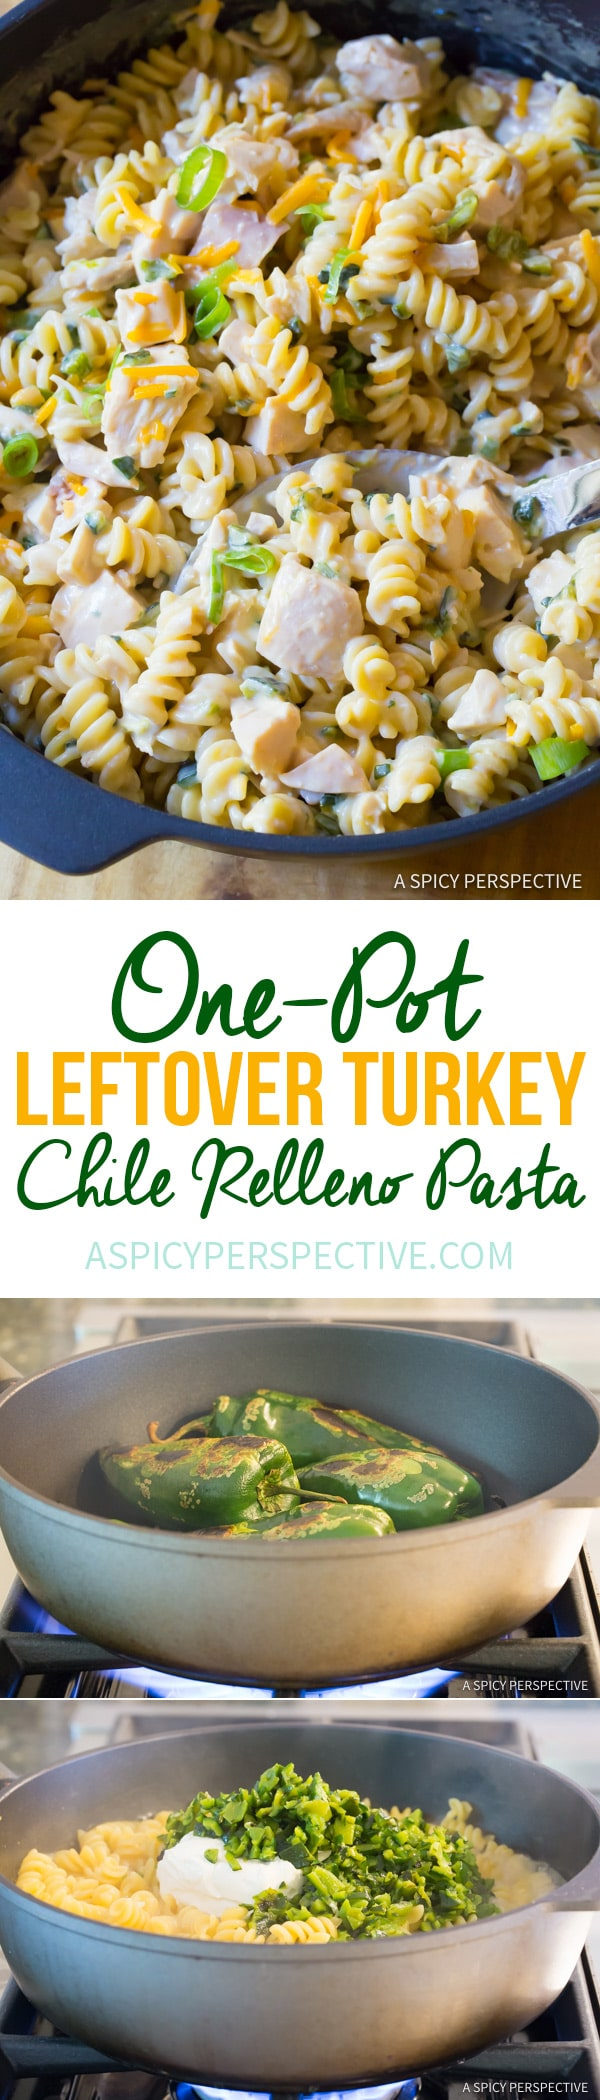 Creamy One-Pot (Leftover) Turkey Chile Relleno Pasta Recipe | ASpicyPerspective.com